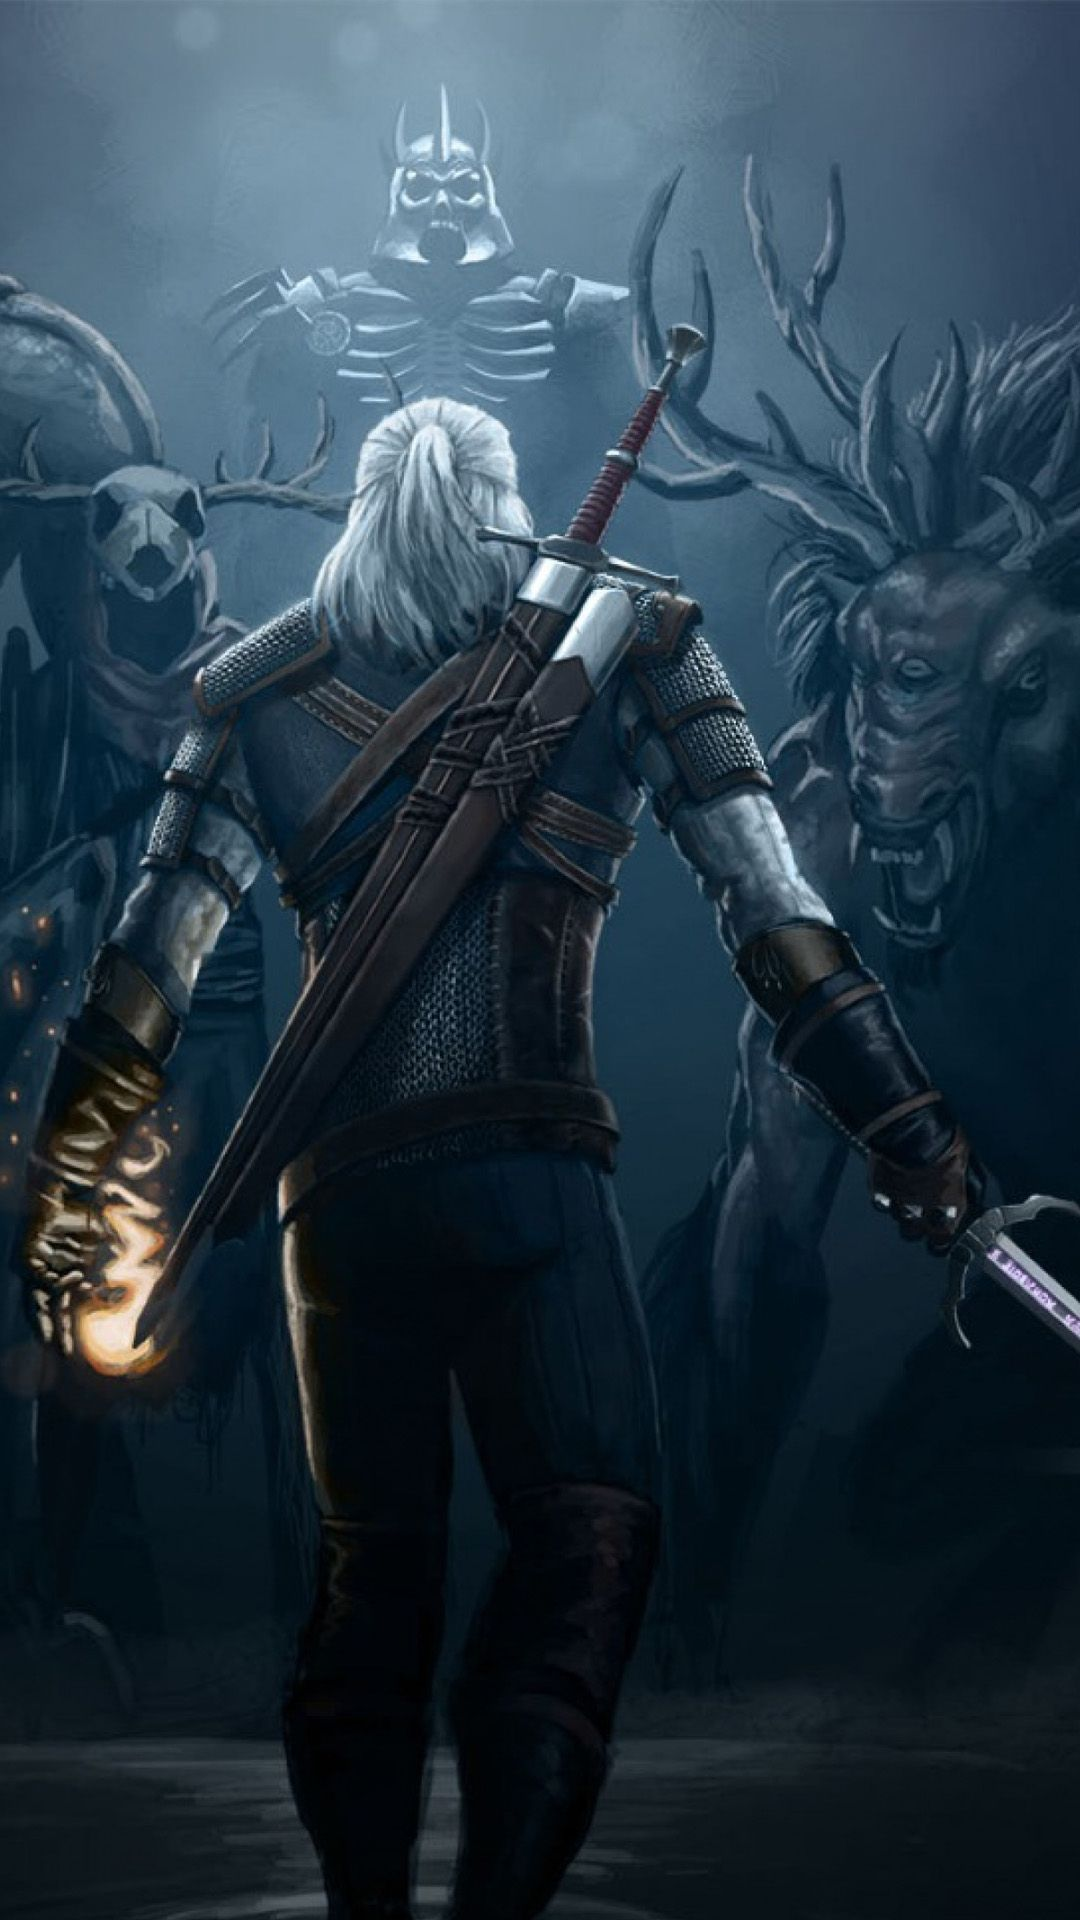 The Witcher 3 Wallpaper 1080p Hupages Download Iphone Wallpapers The Witcher The Witcher Wild Hunt The Witcher 3